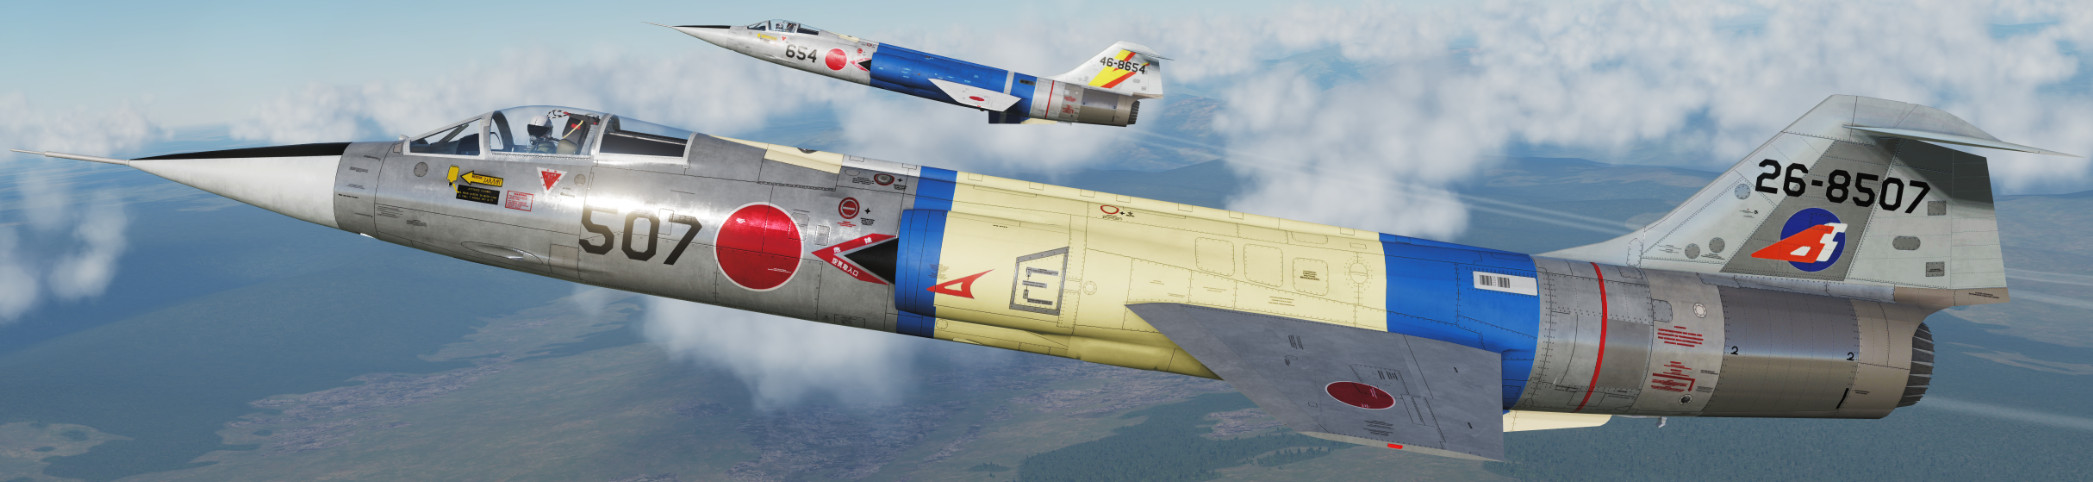 2 JASDF F-104J skins for the F-104G by VSN